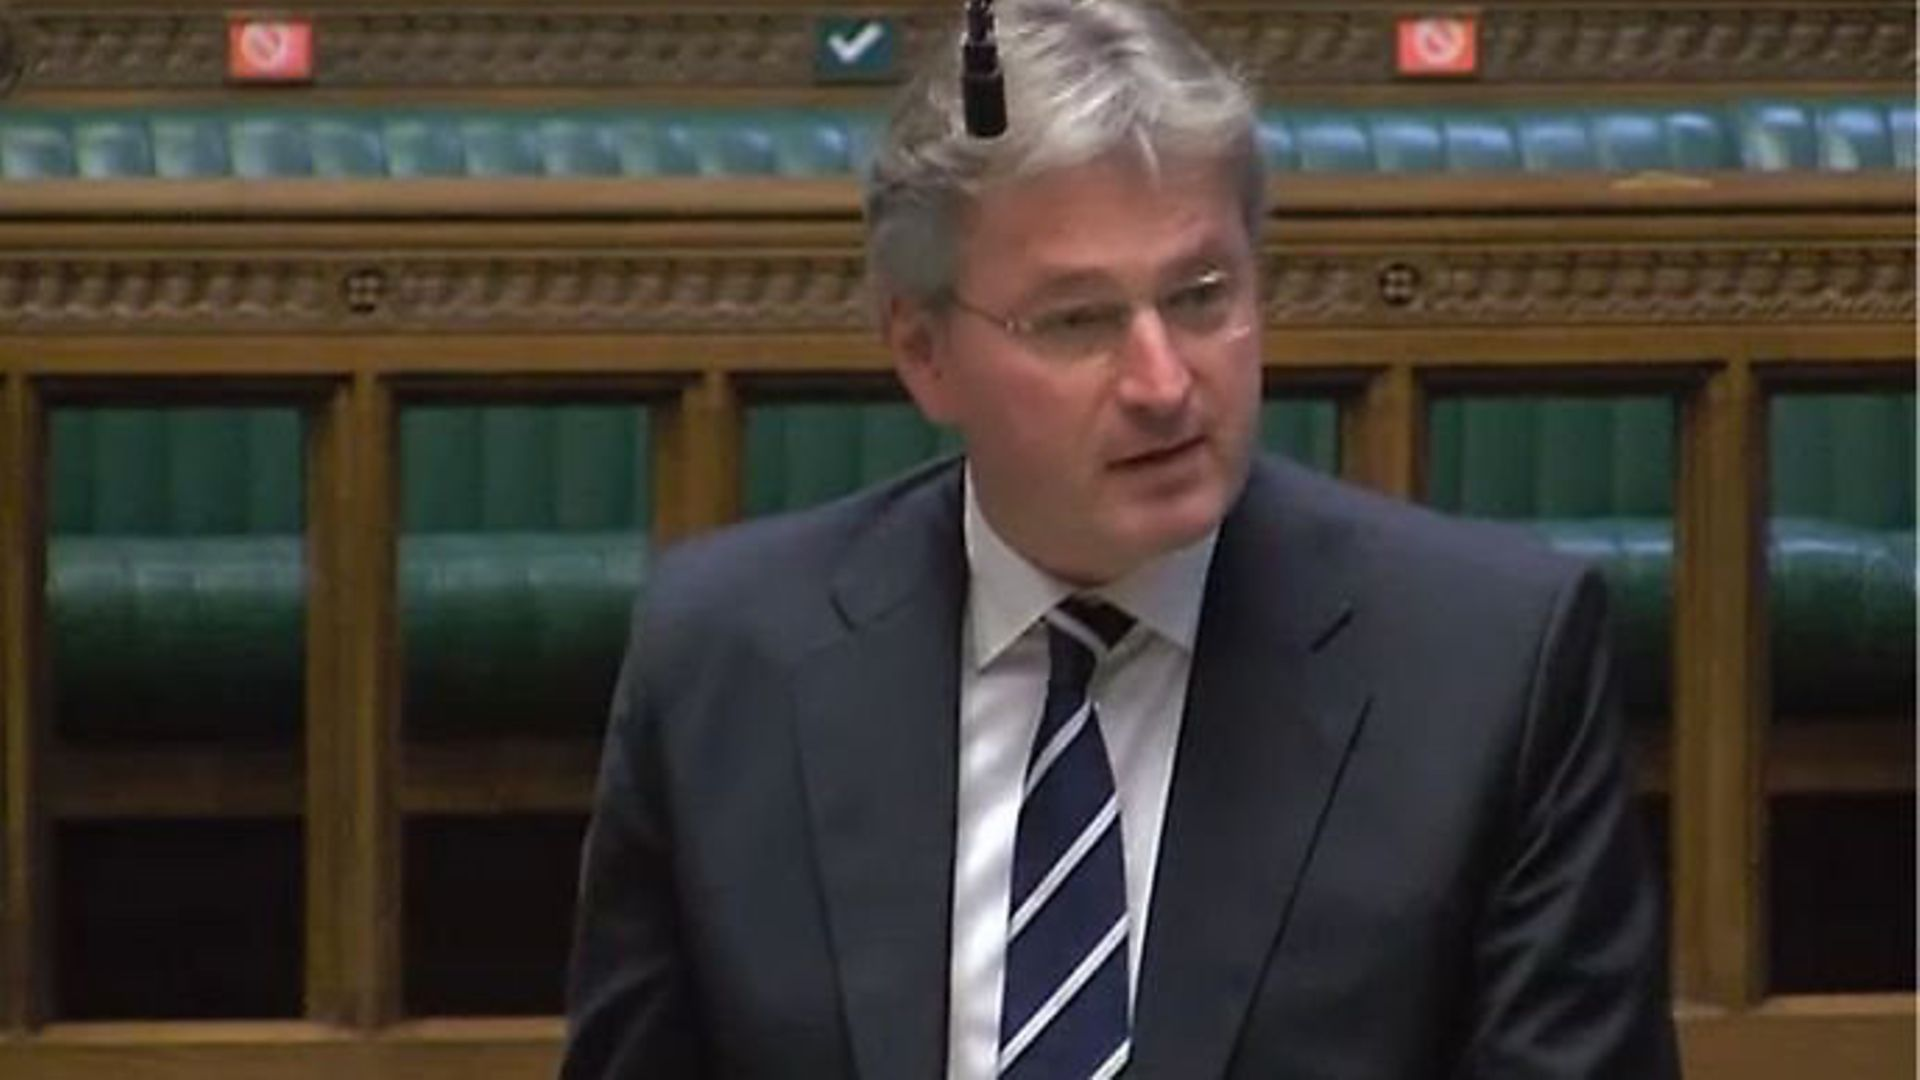 Pro-Brexit Tory MP Daniel Kawczynski in the House of Commons - Credit: Parliament TV